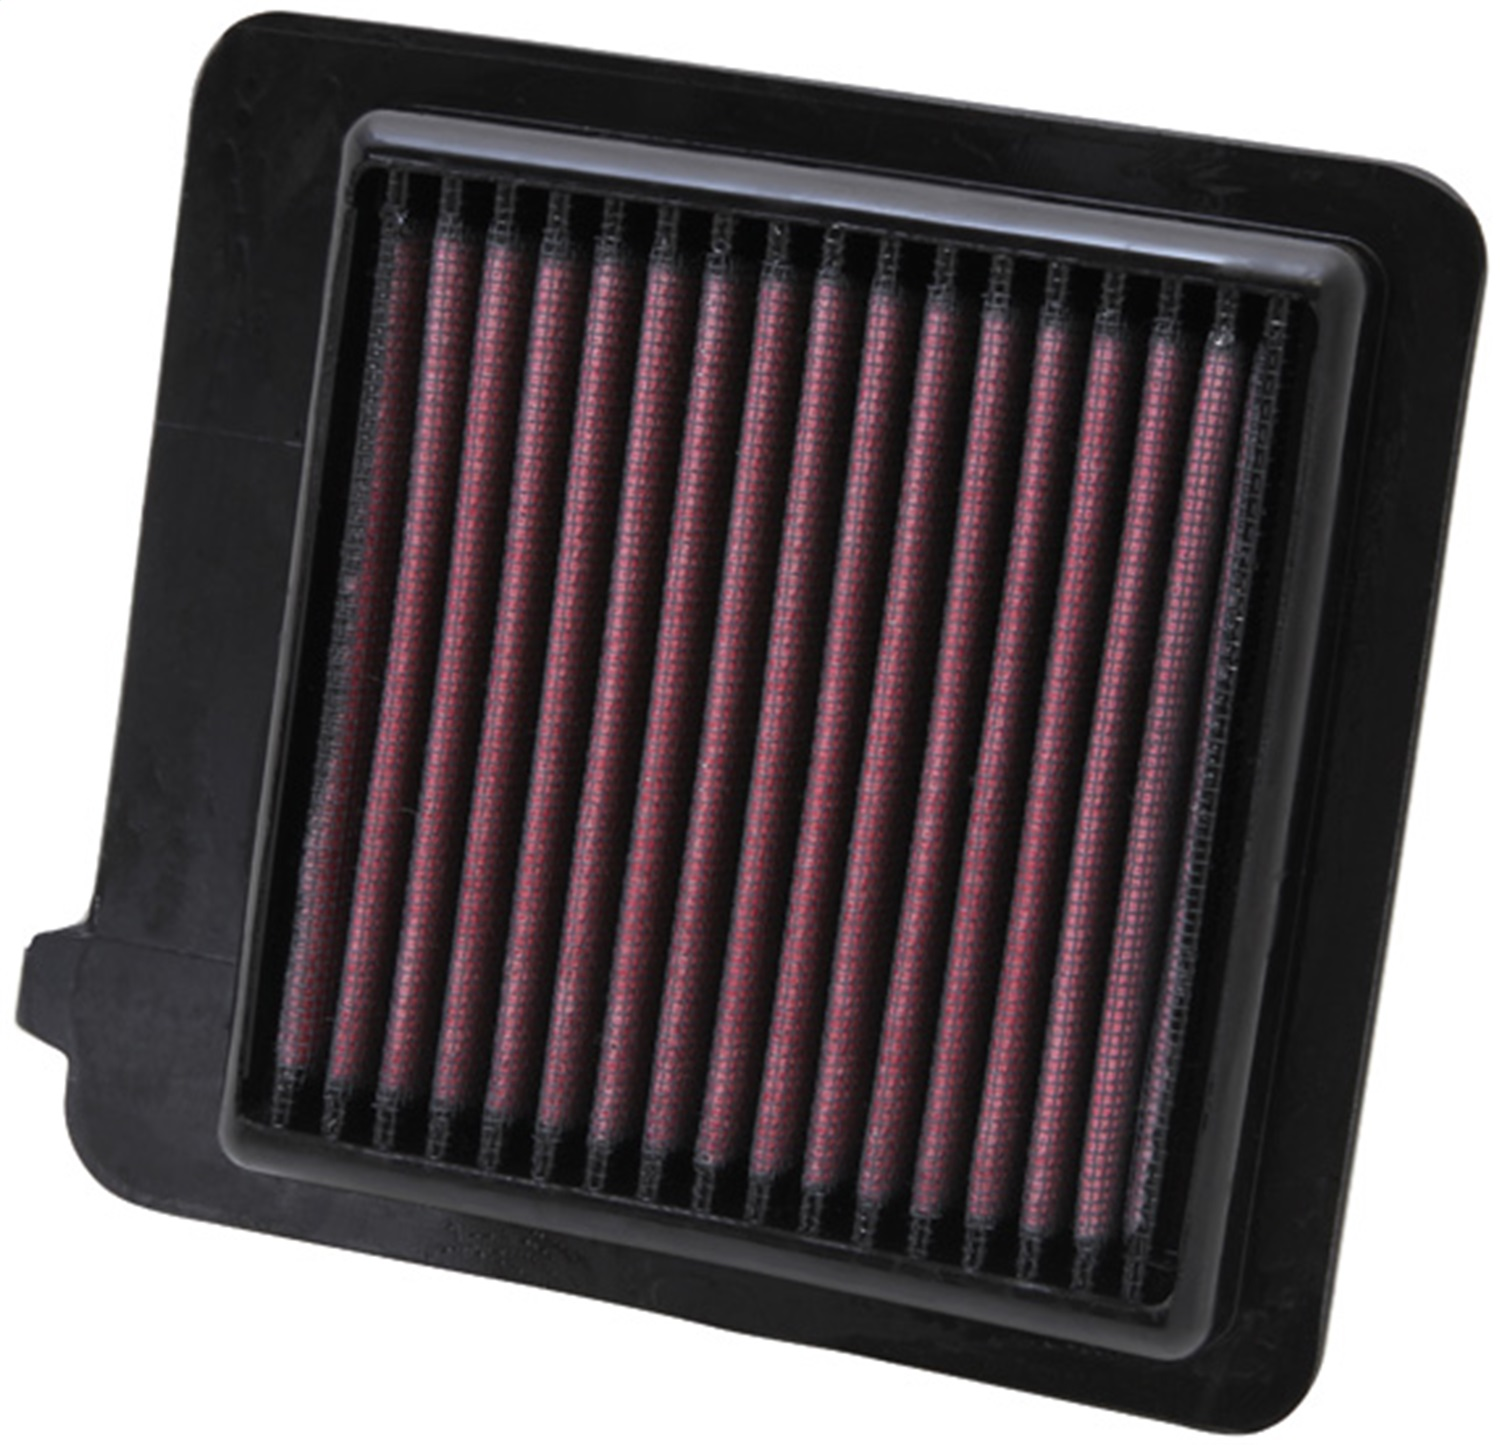 K&N Filters 33-2459 Air Filter Fits 11-15 CR-Z 33-2459